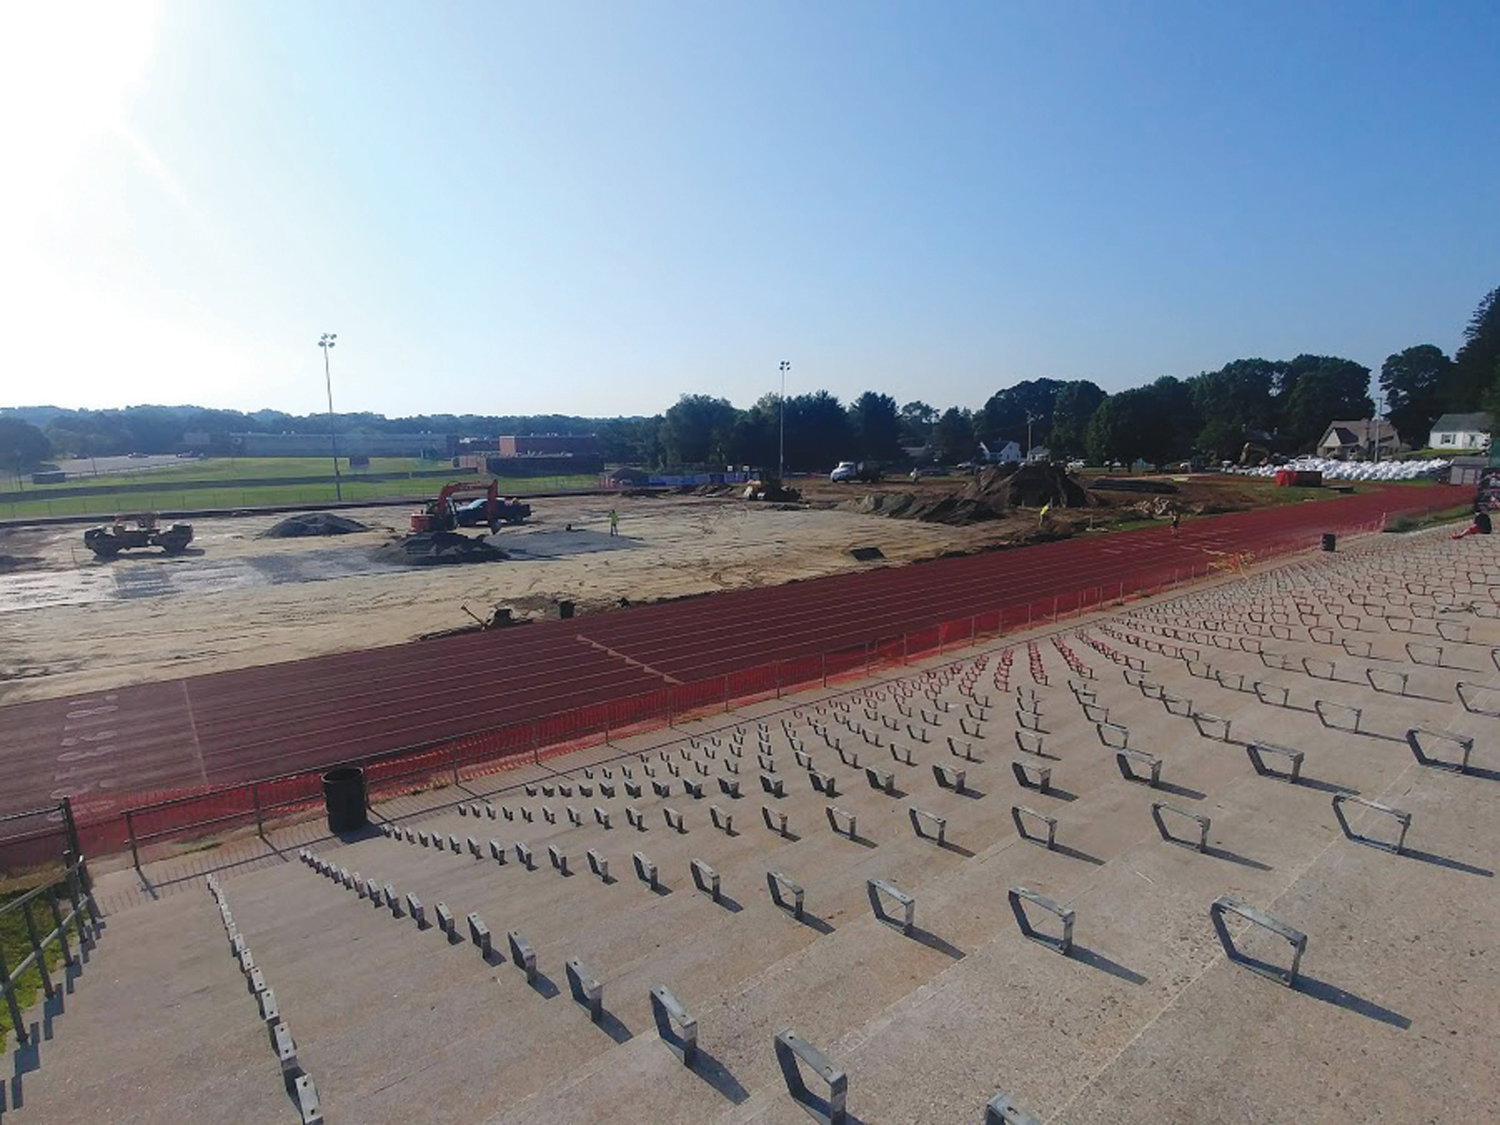 SIGNS OF PROGRESS: In every direction, there are signs of the work being done at the Cranston West stadium.